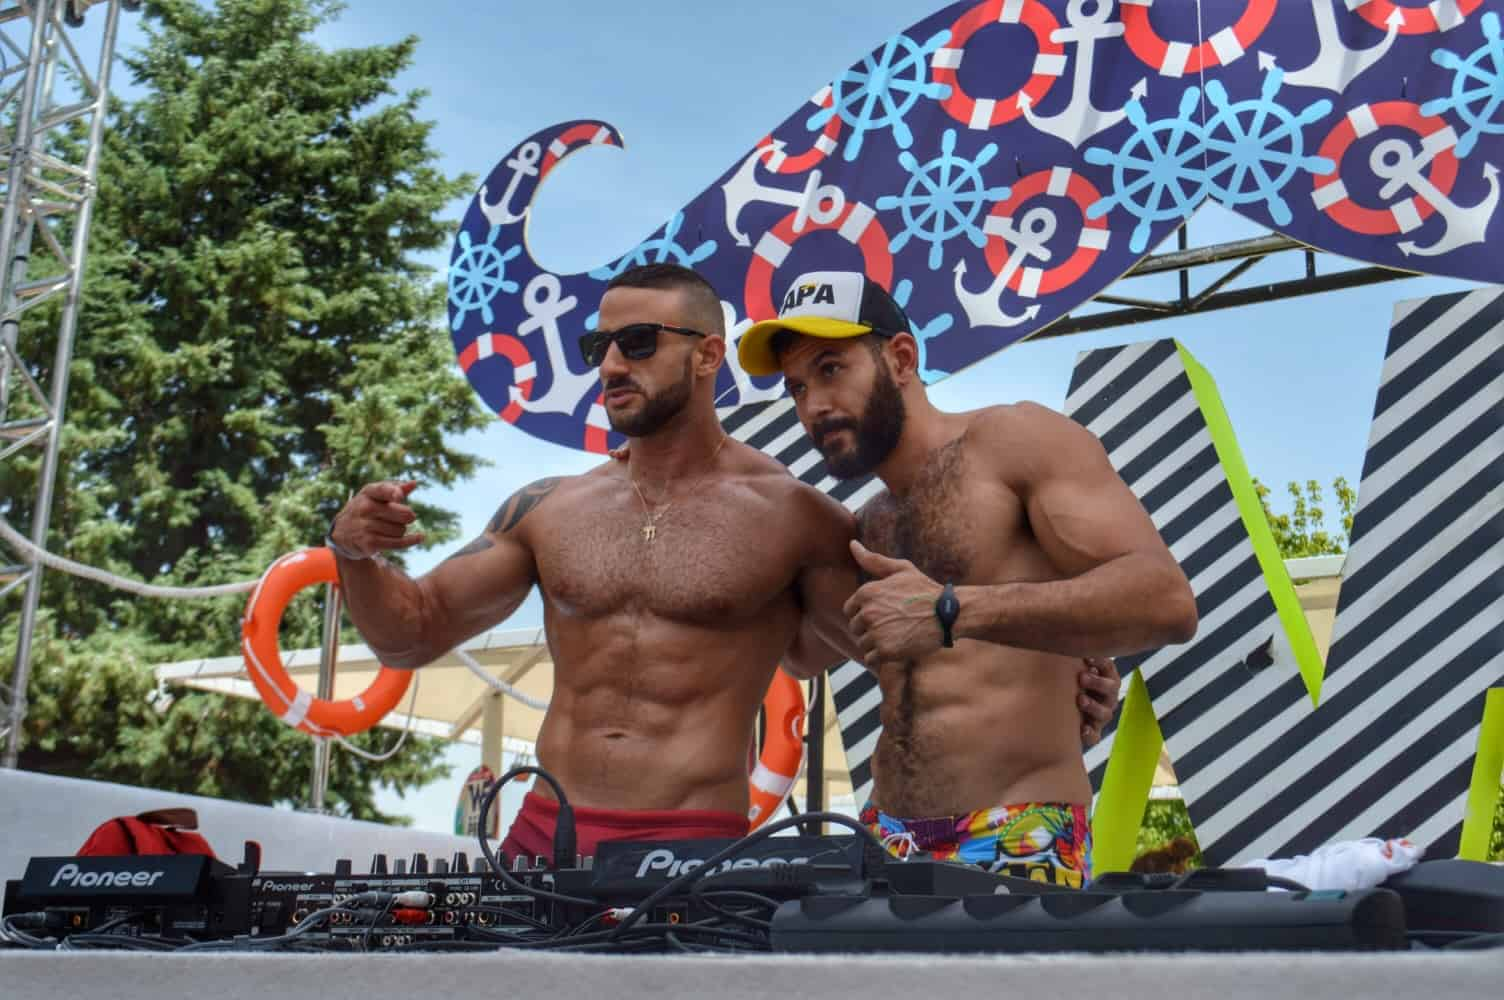 Madrid Gay Pride: A Guide to Europes Largest LGBT Event